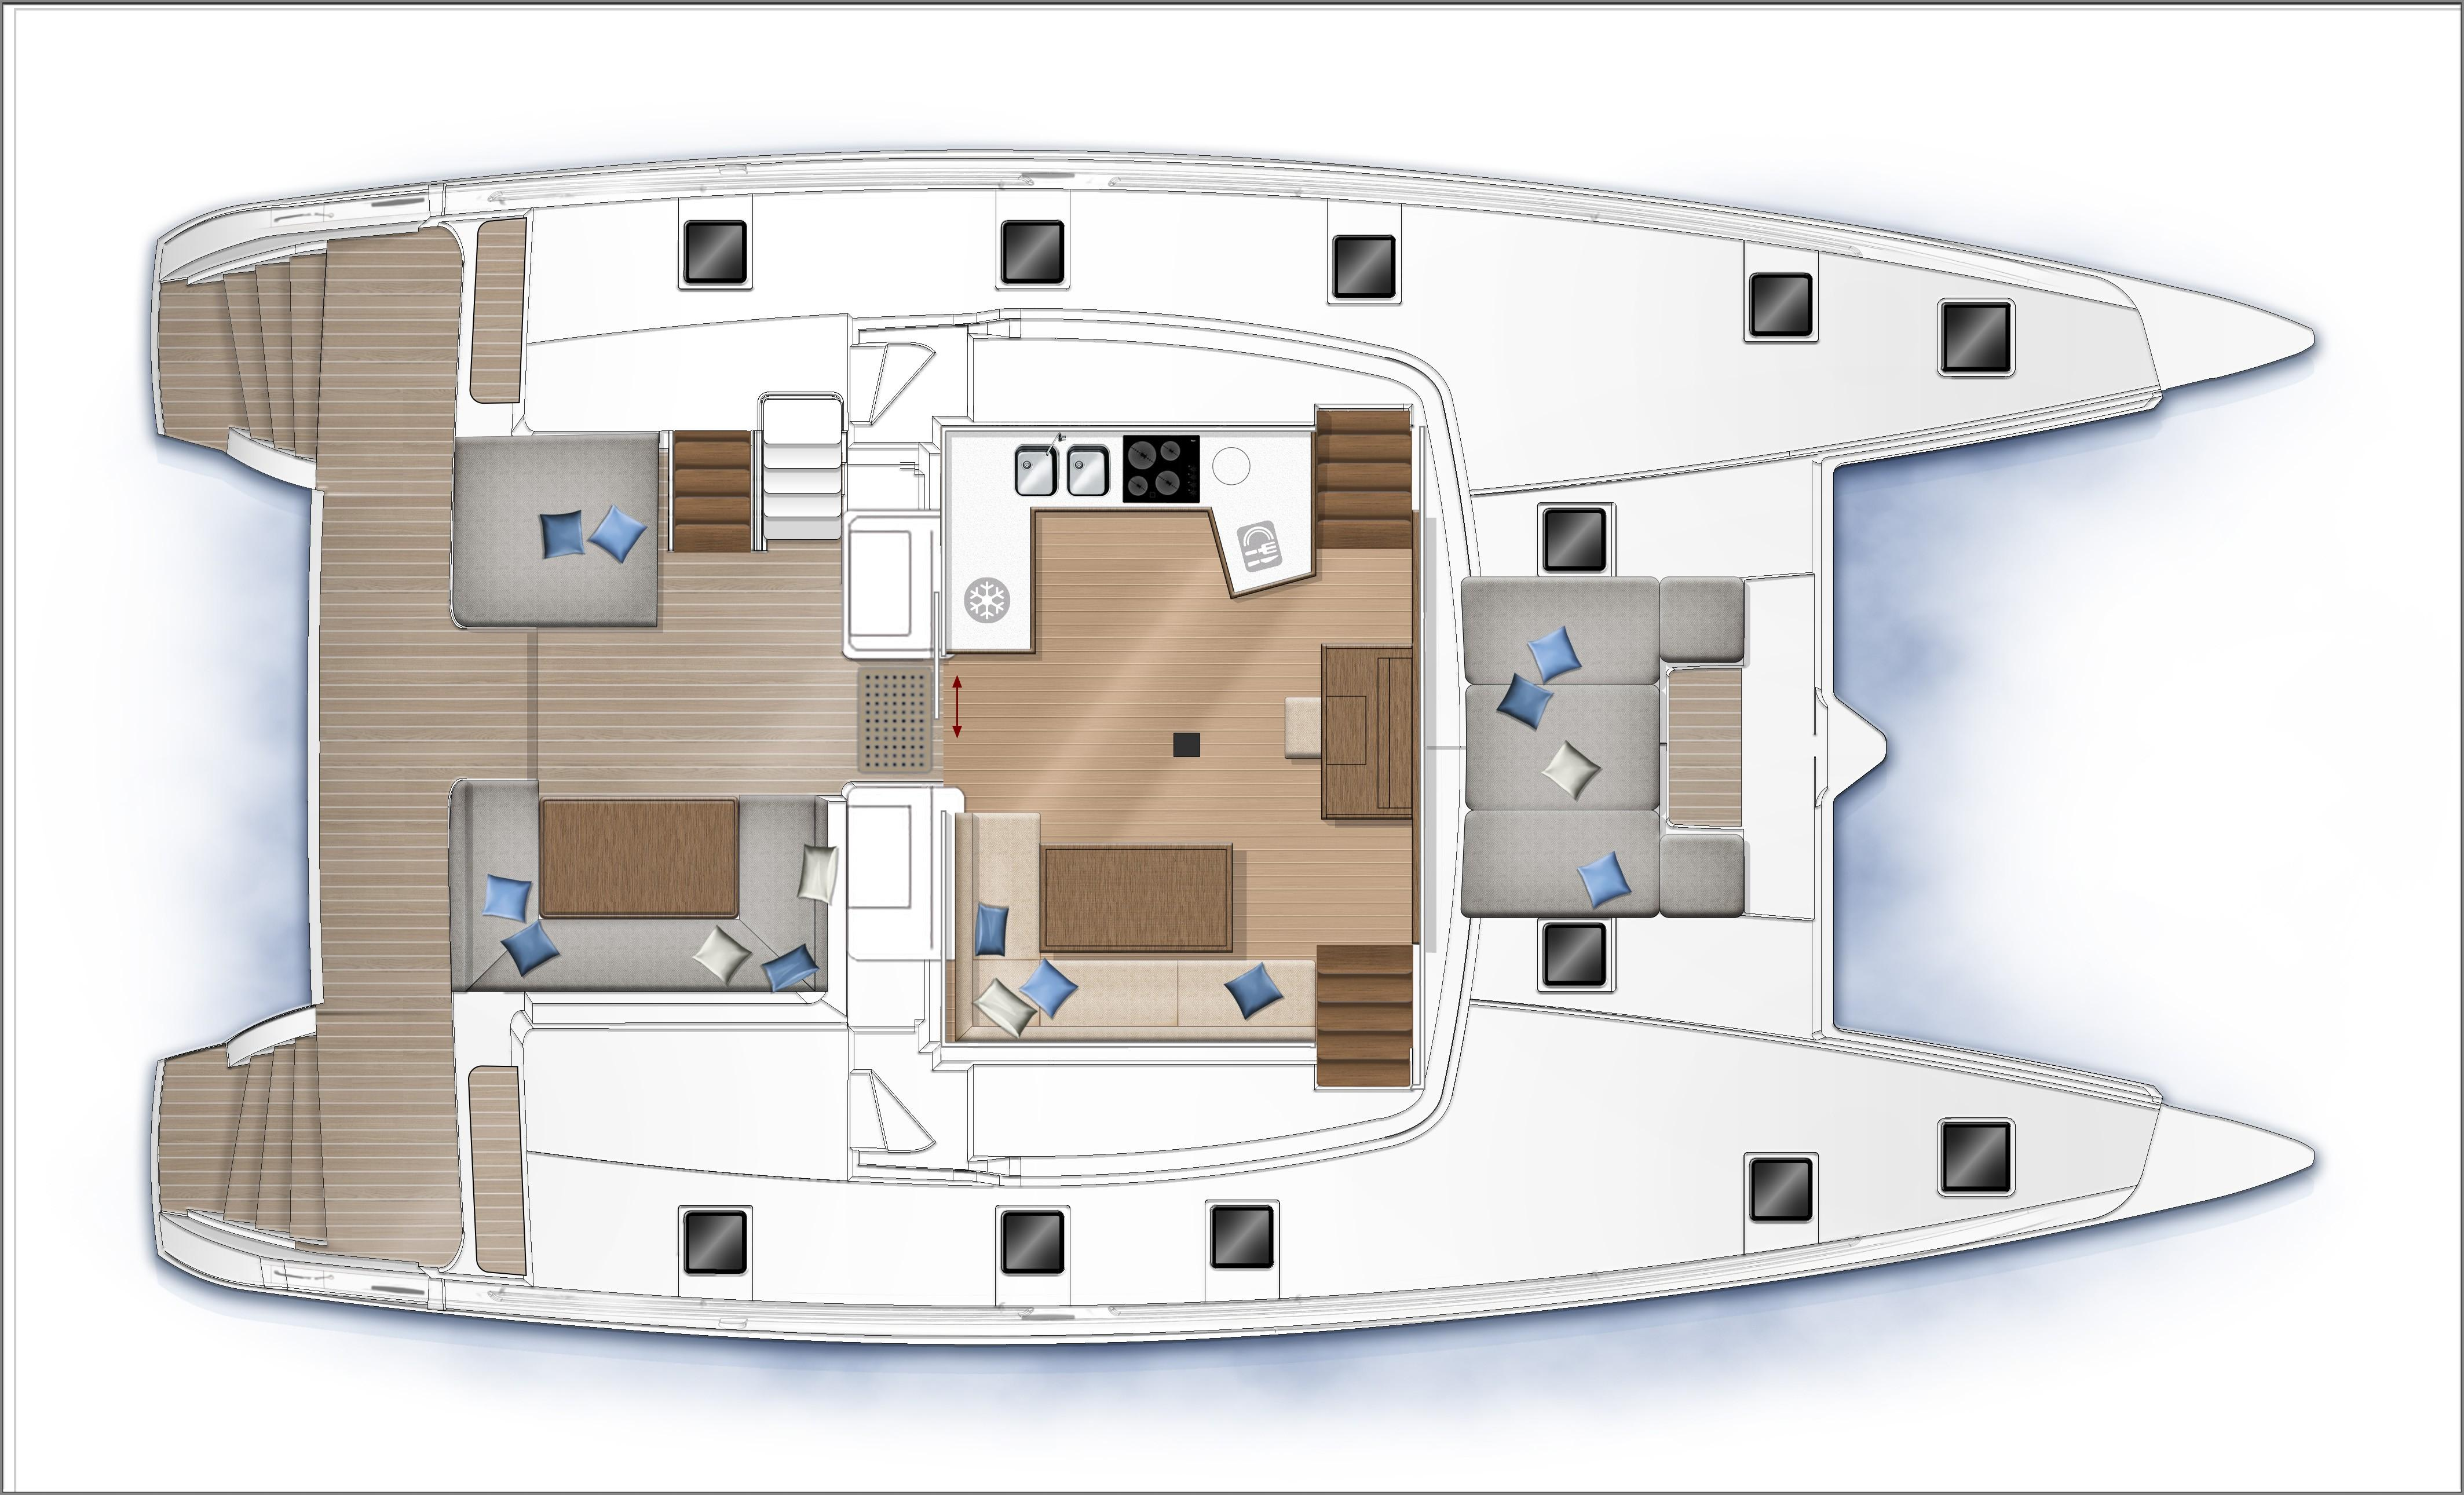 helloManufacturer Provided Image: Lagoon 52 F Upper Deck Layout Plan